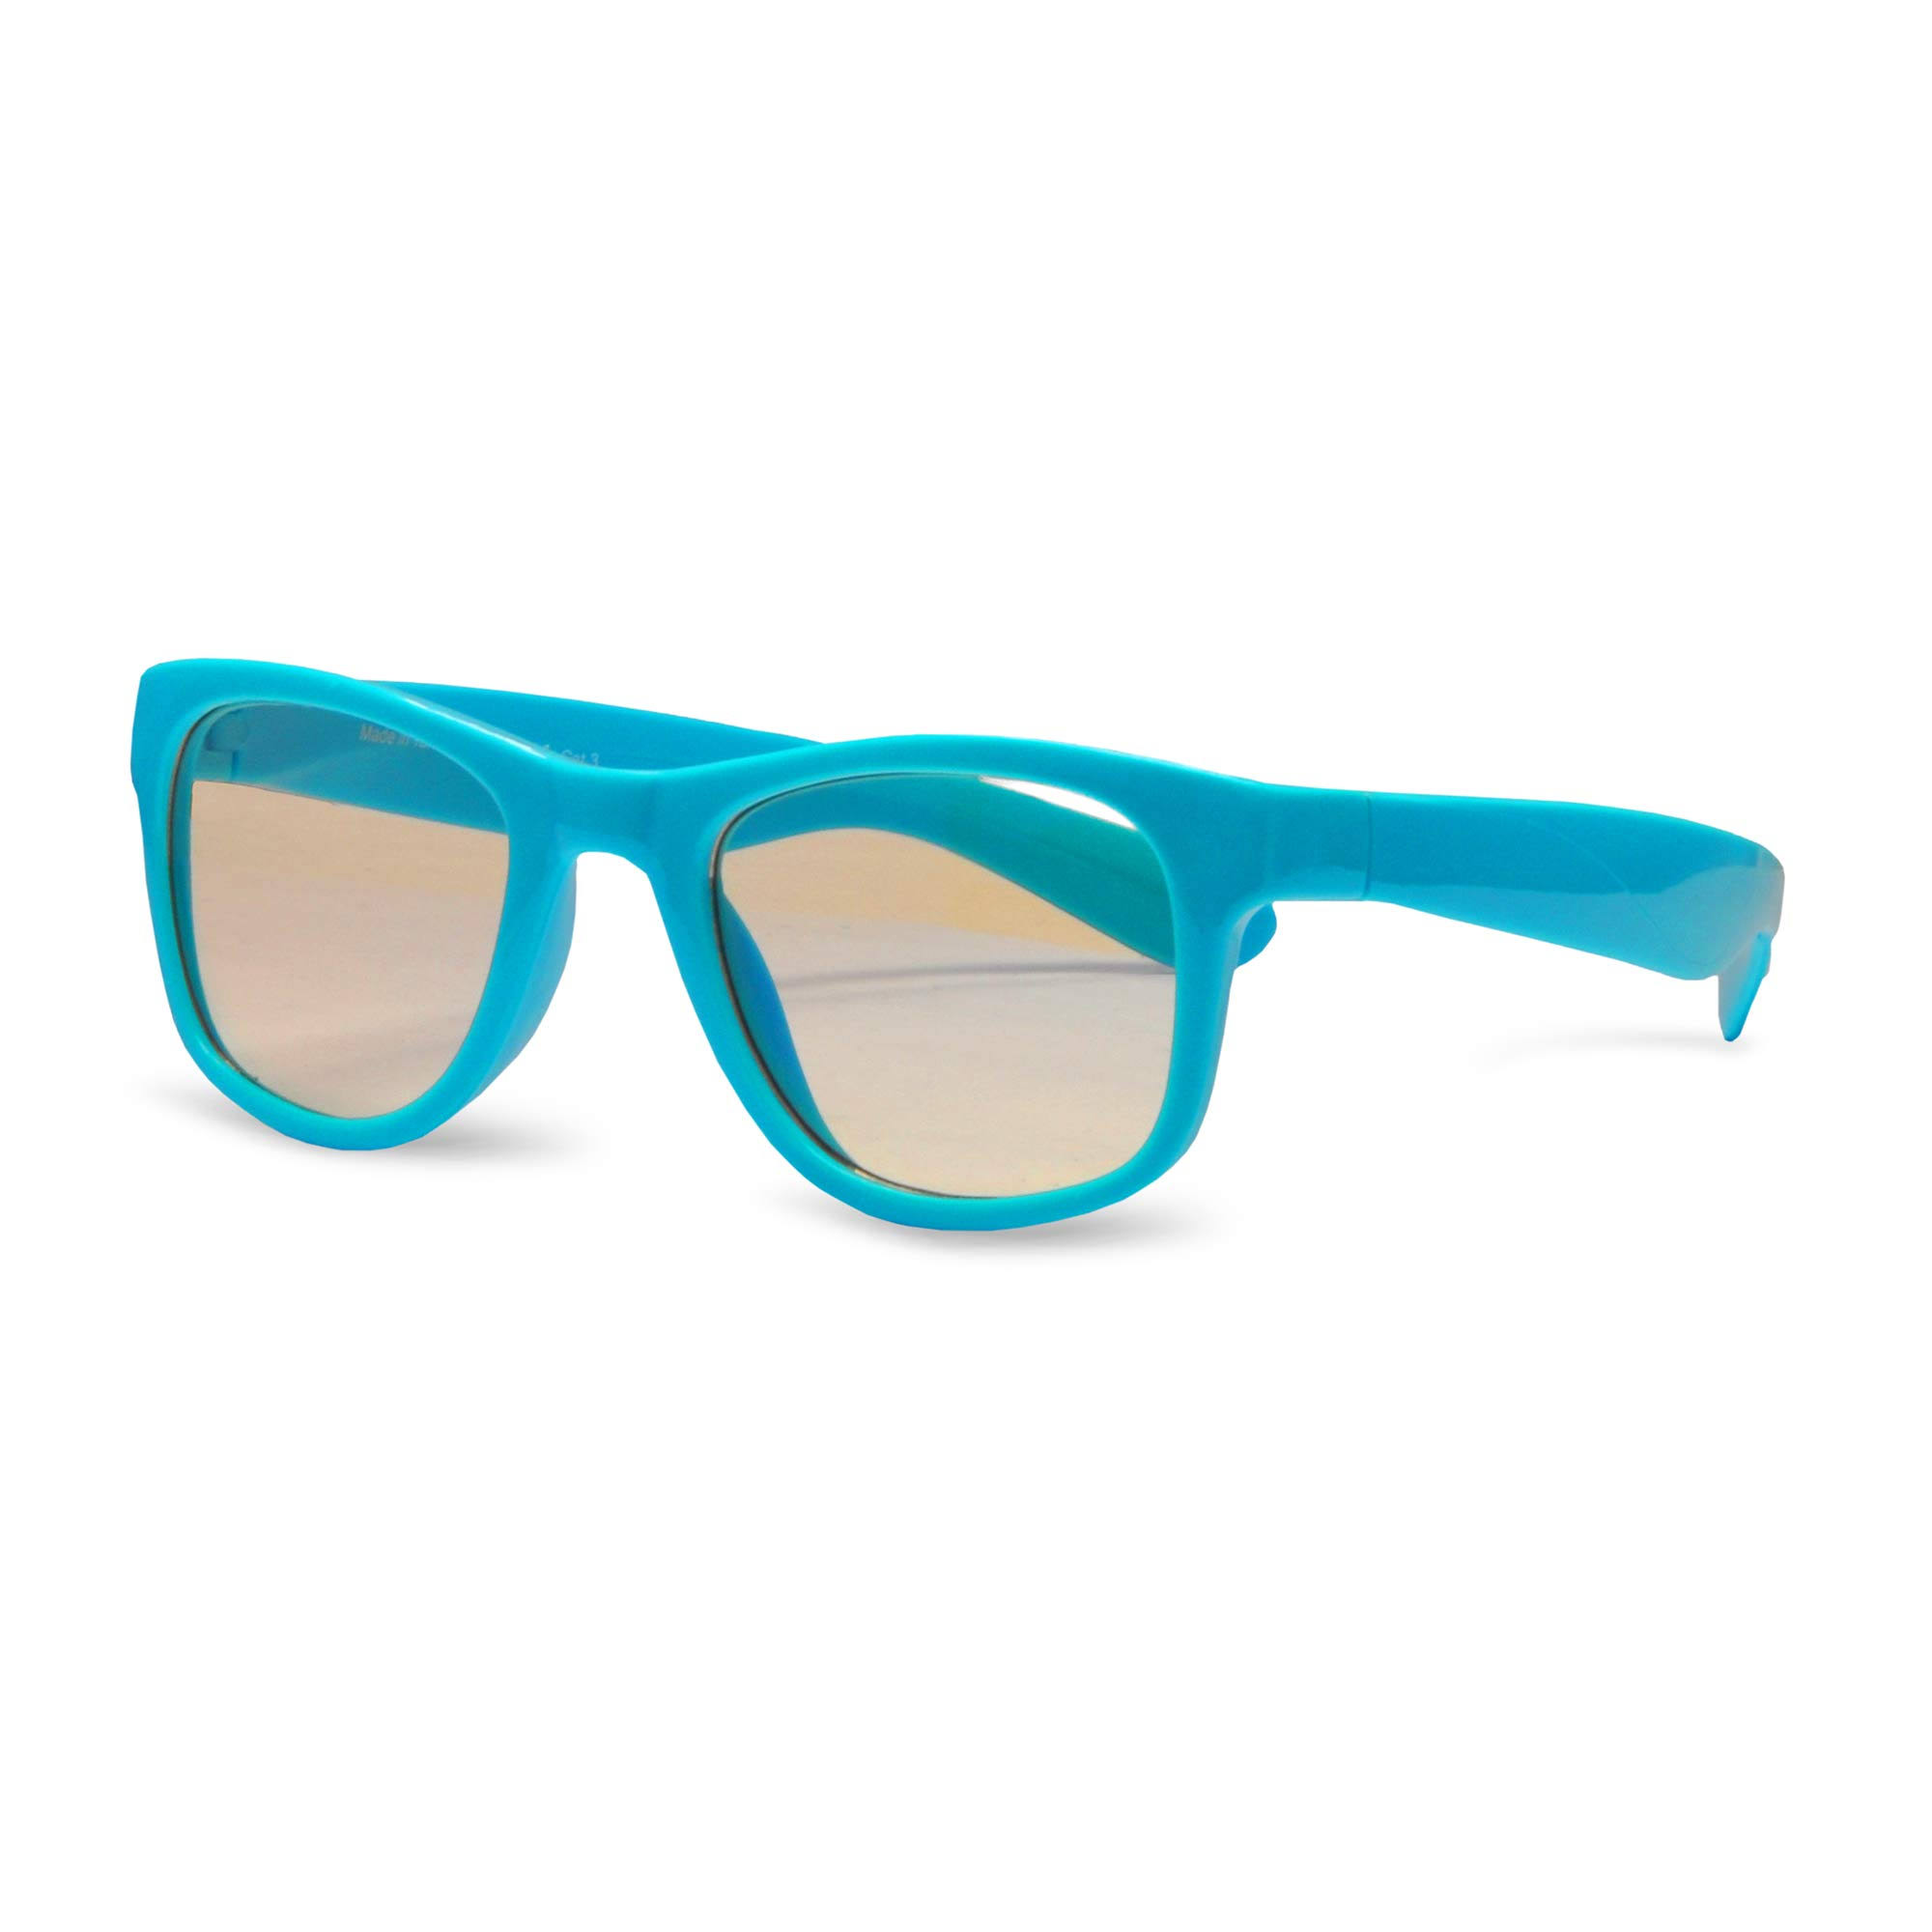 Real Shades Blue Light Glasses 4+ Blue